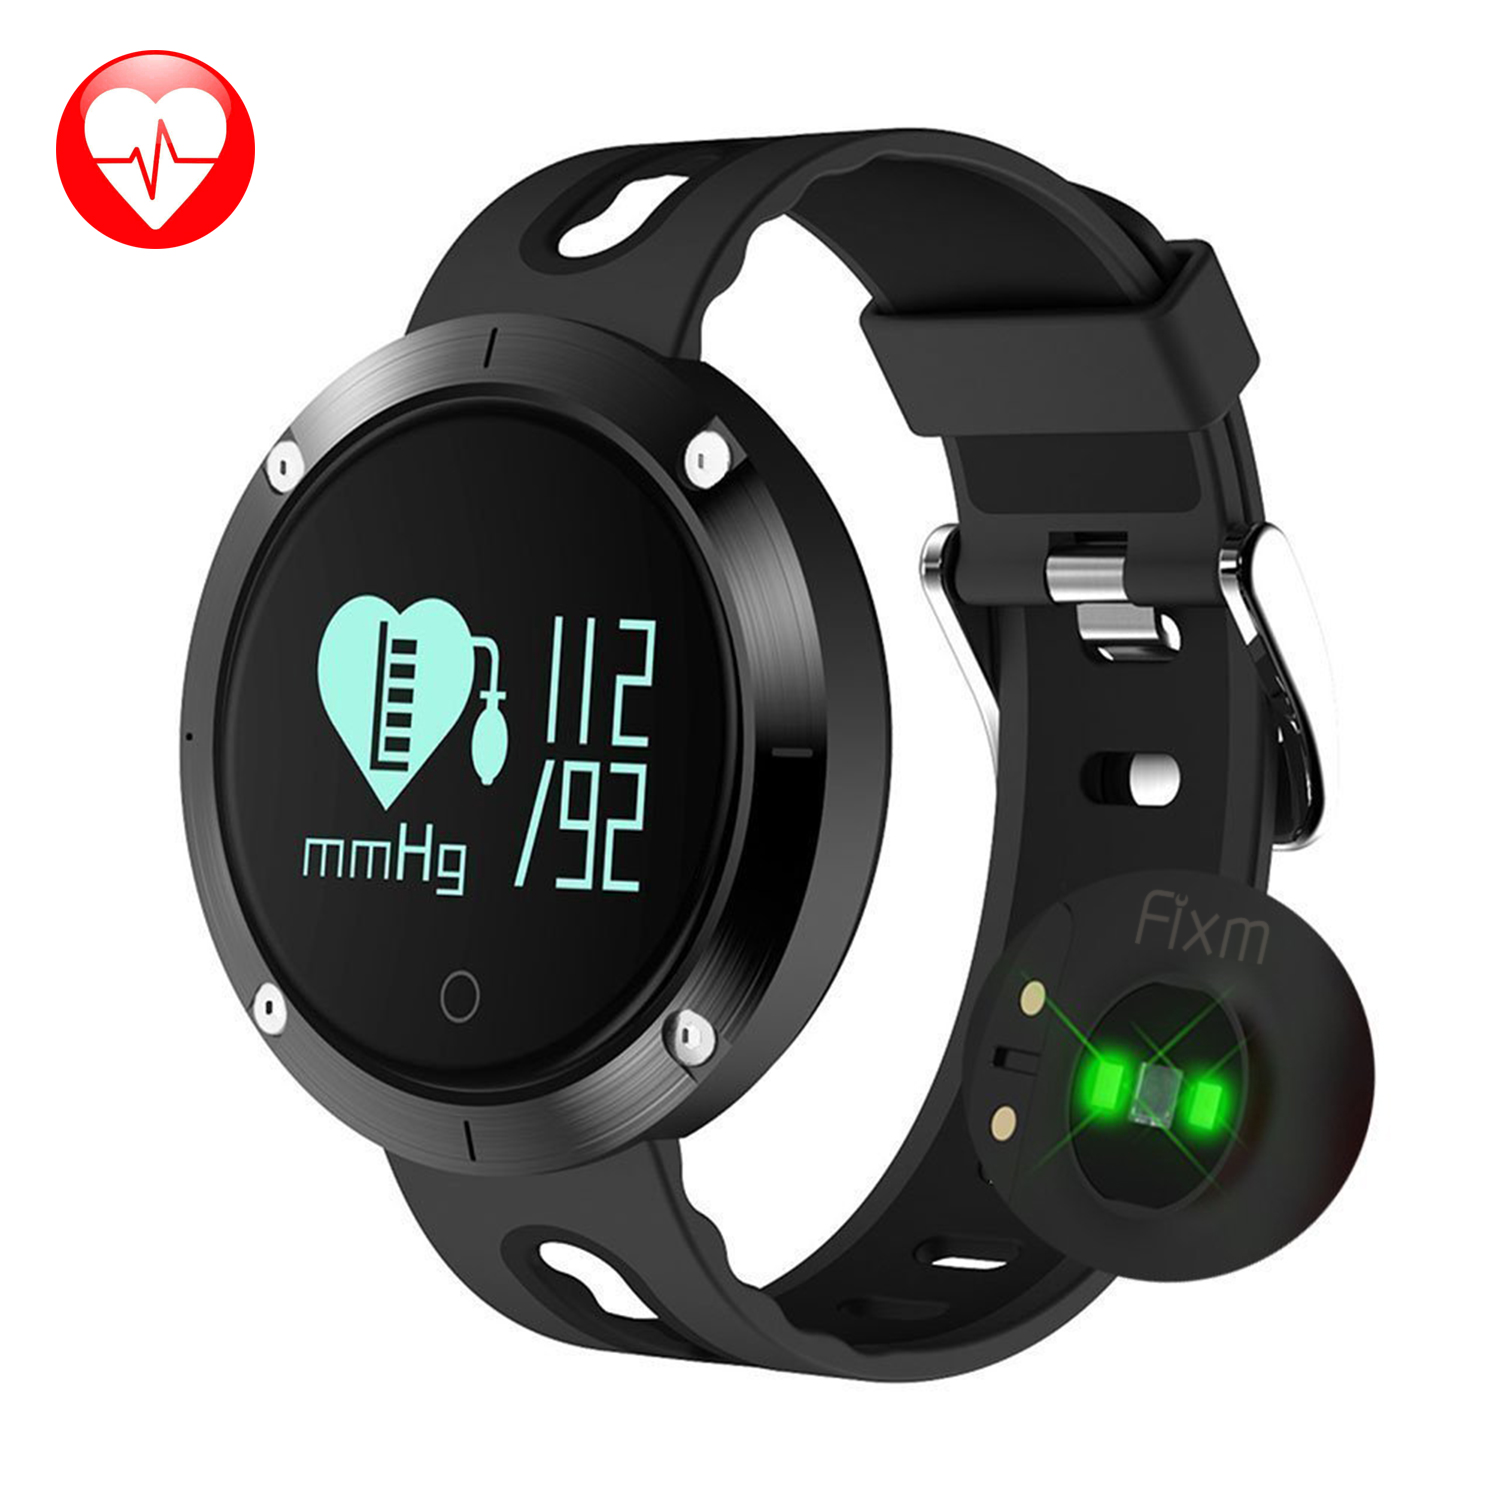 Fitness Tracker Bluetooth Smart Wrist Watch with Blood Pressure/Heart Rate Monitor for IOS Android Black